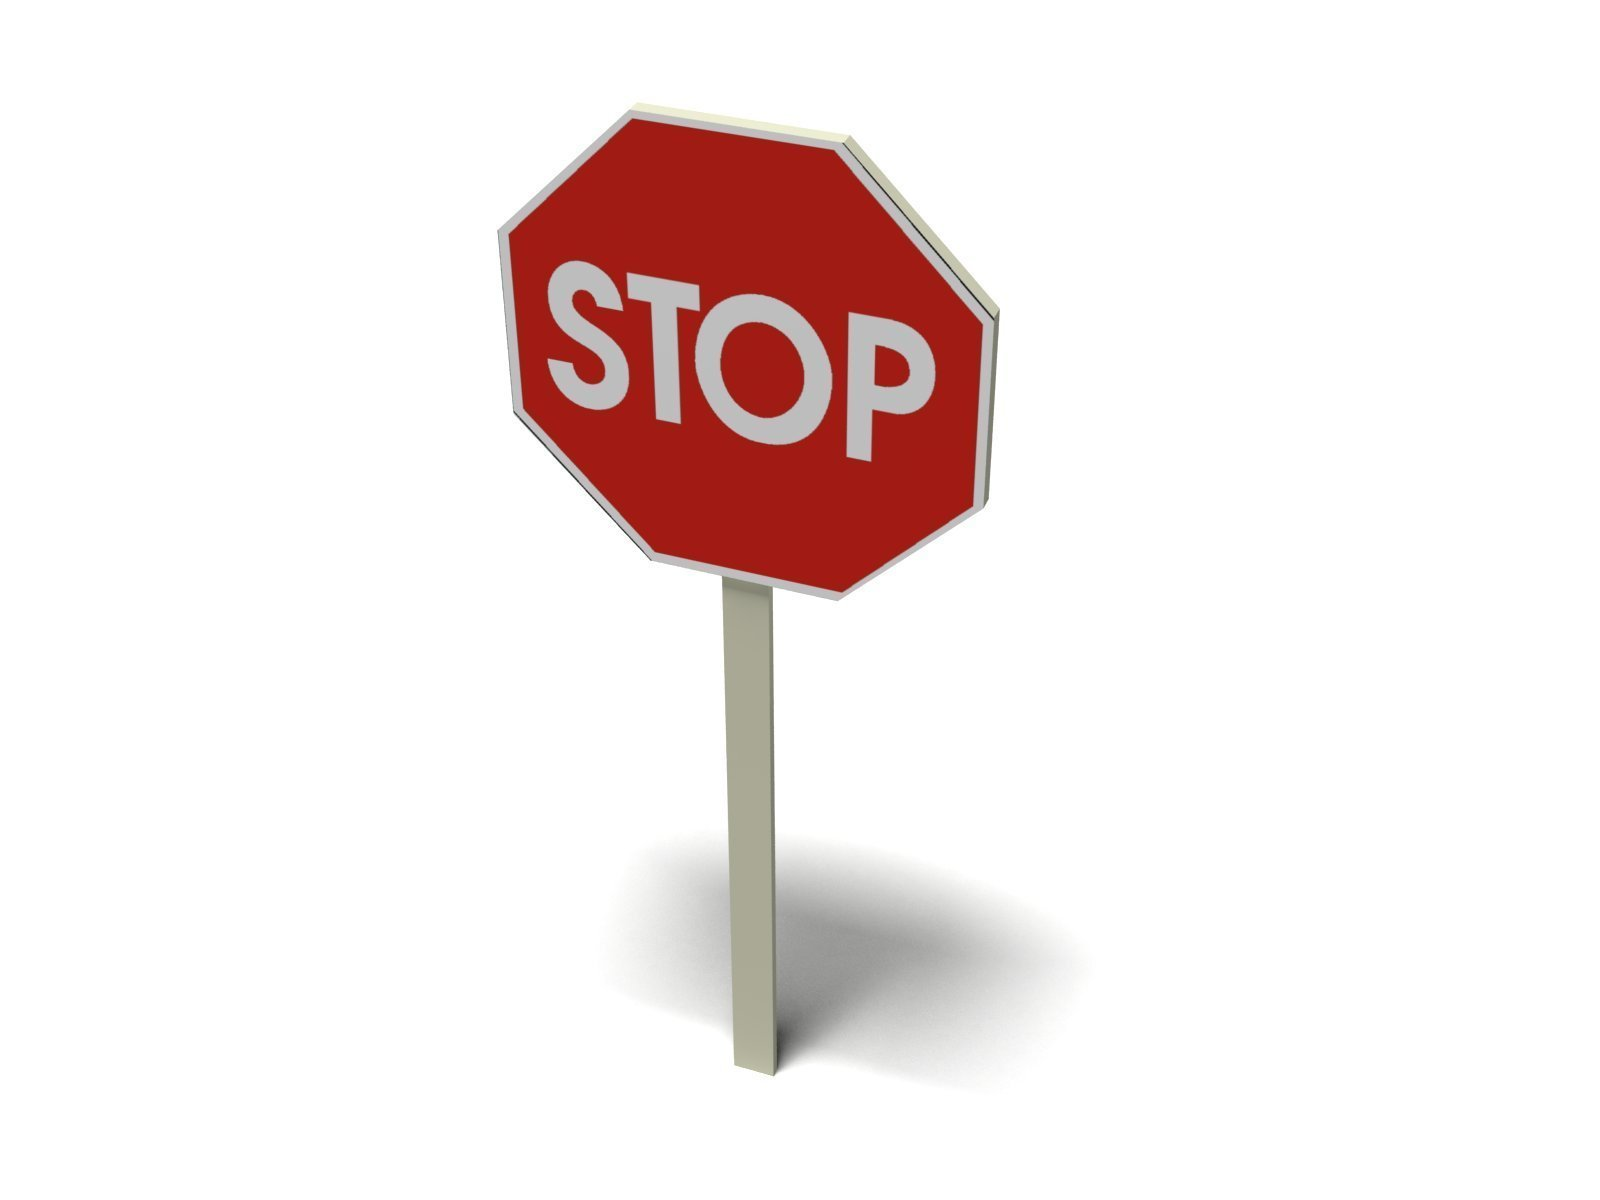 1600x1200 Stop Sign Image Clipart 2